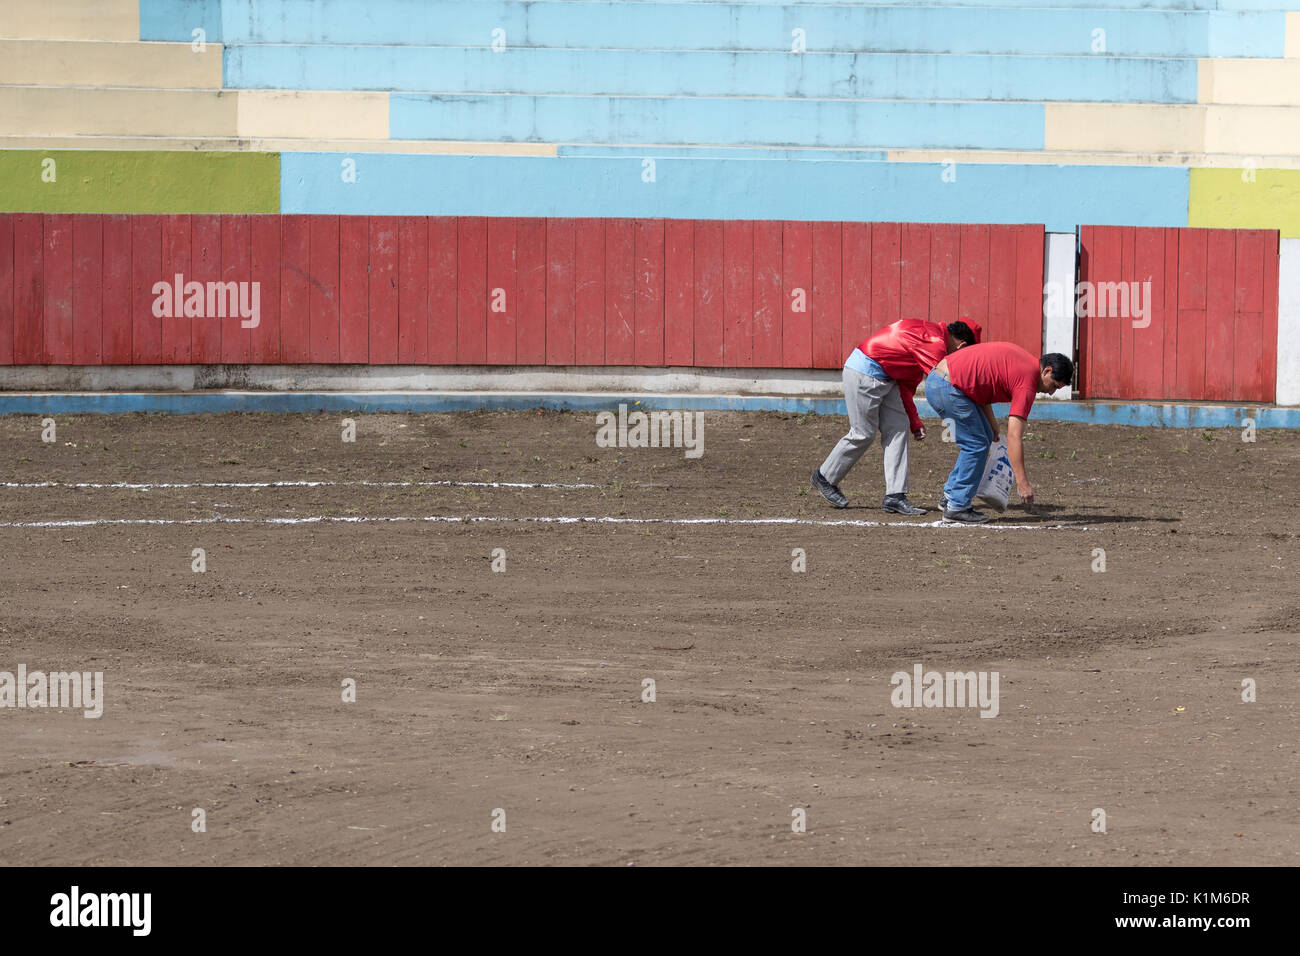 June 18, 2017, Pujili, Ecuador: men preparing the bullfighting ring before the event by marking circles on the ground - Stock Image